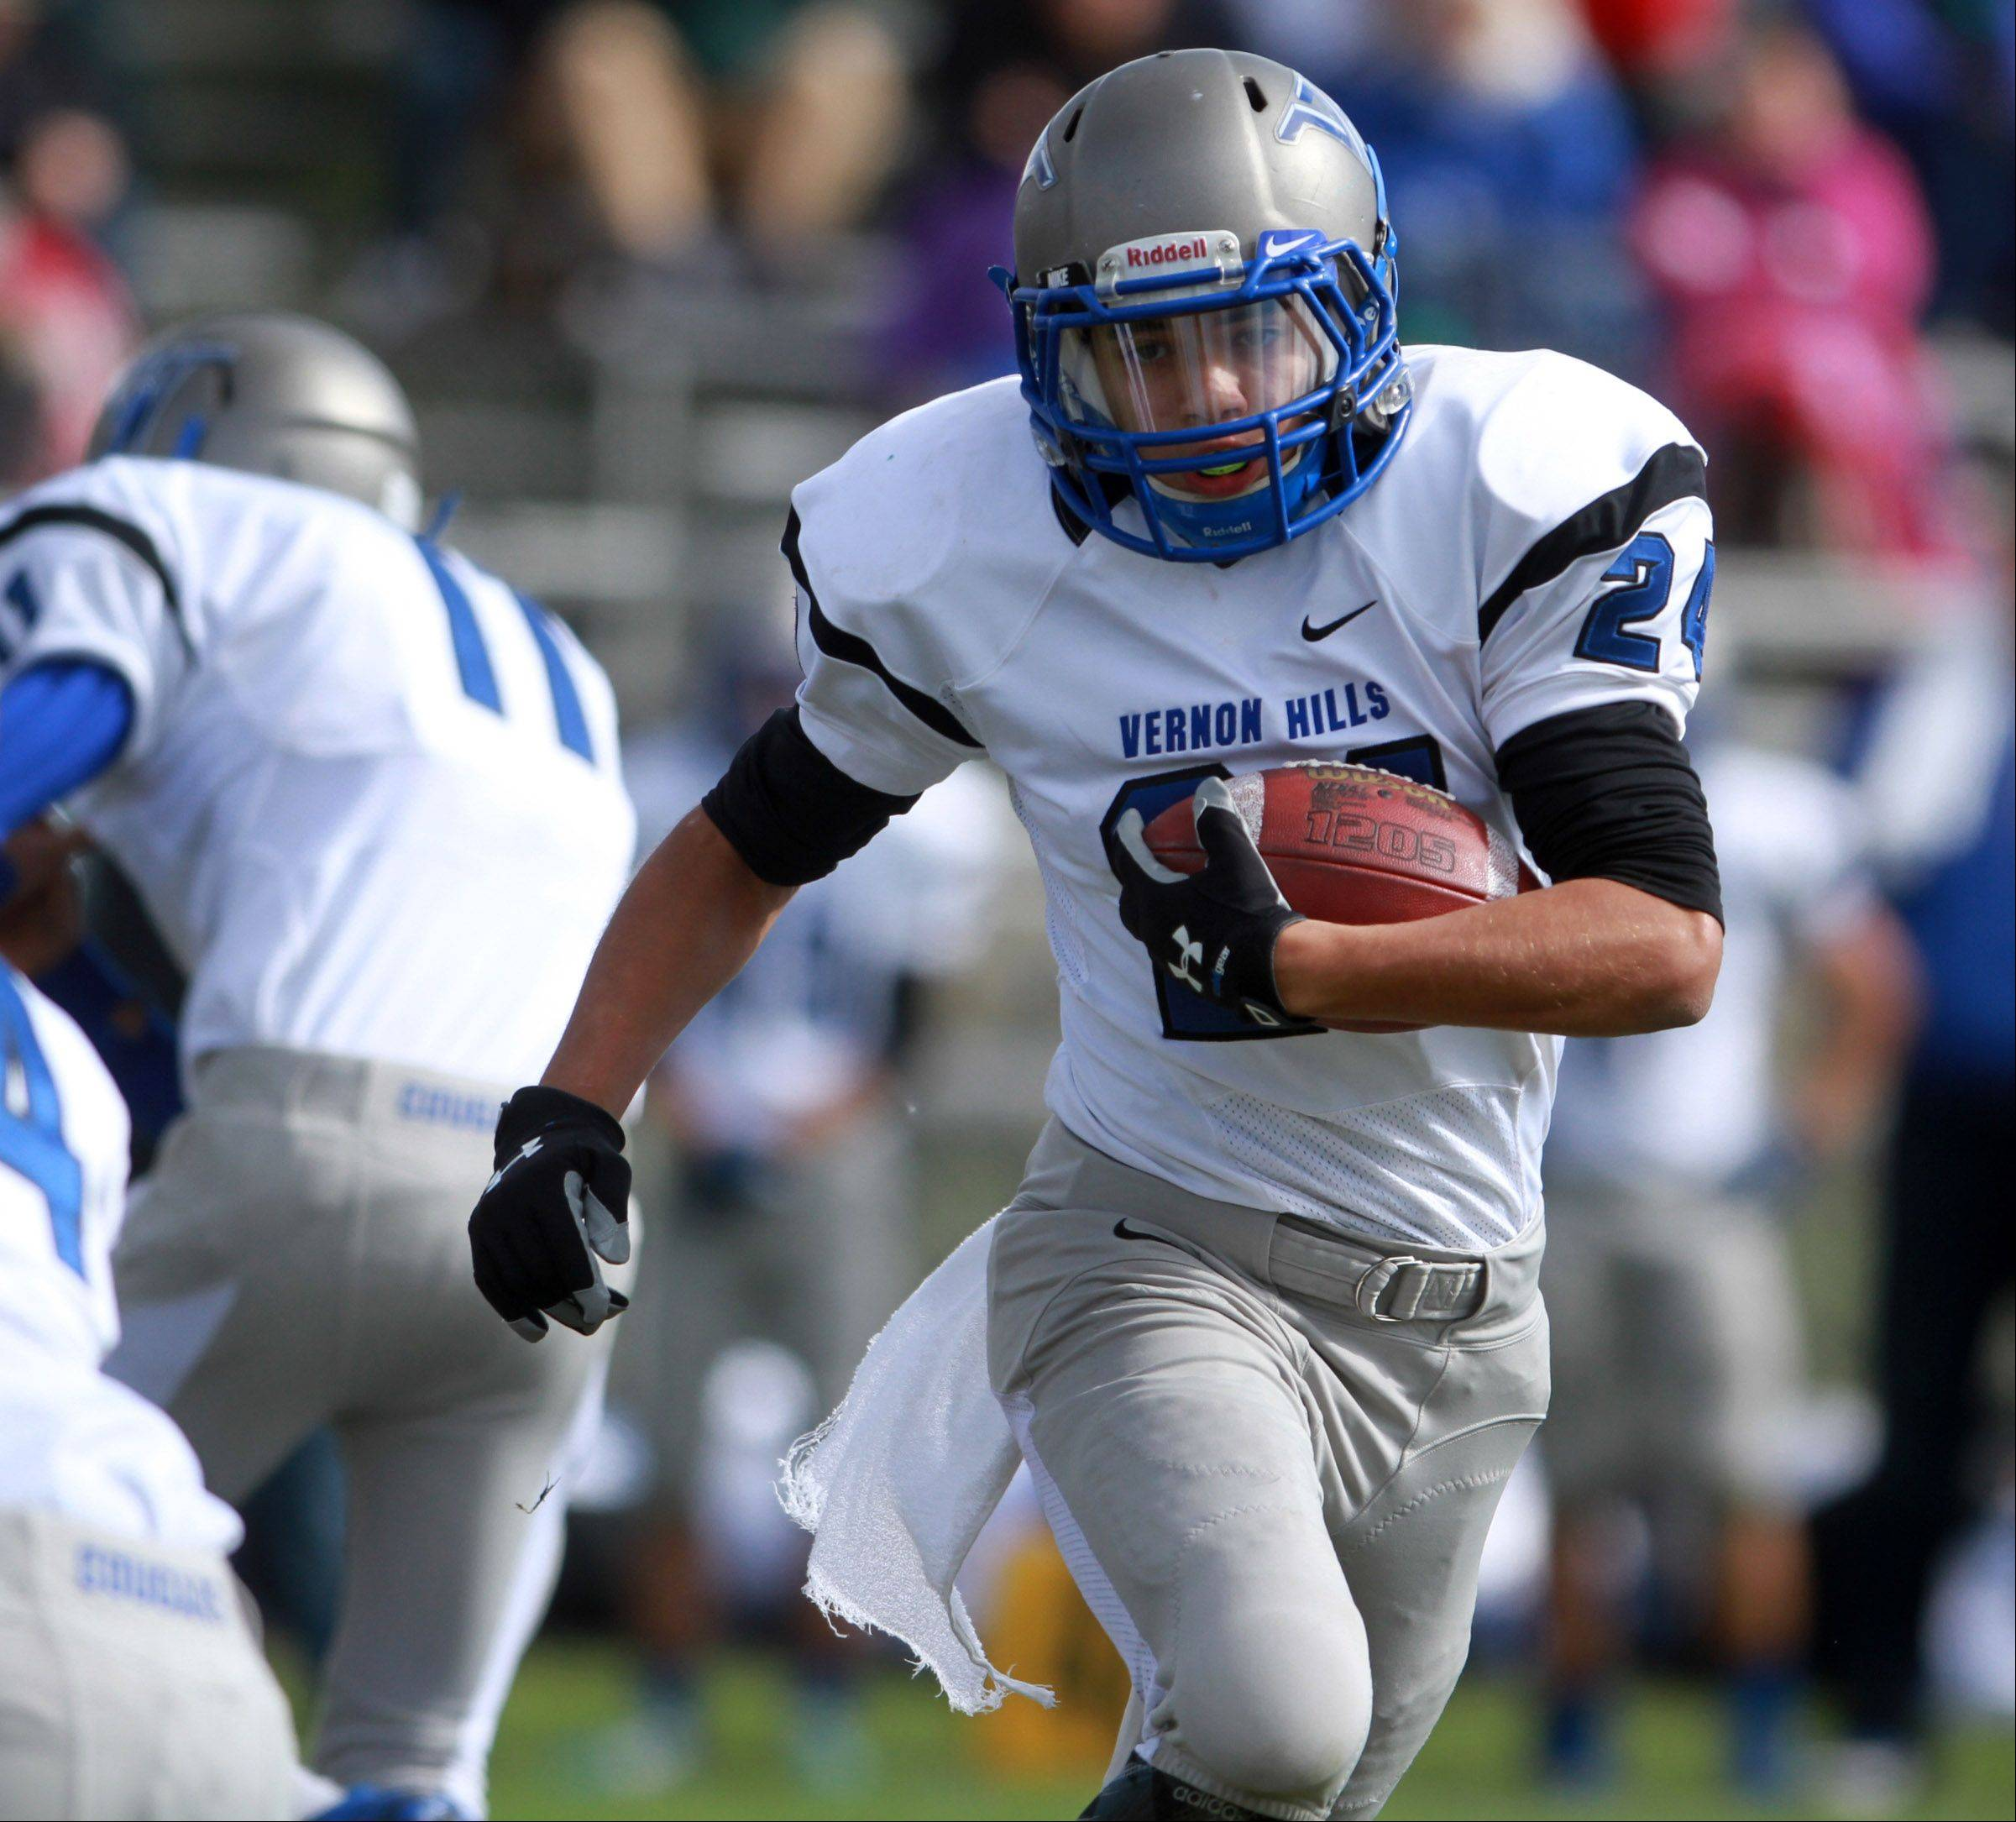 Images: Round Lake vs. Vernon Hills football